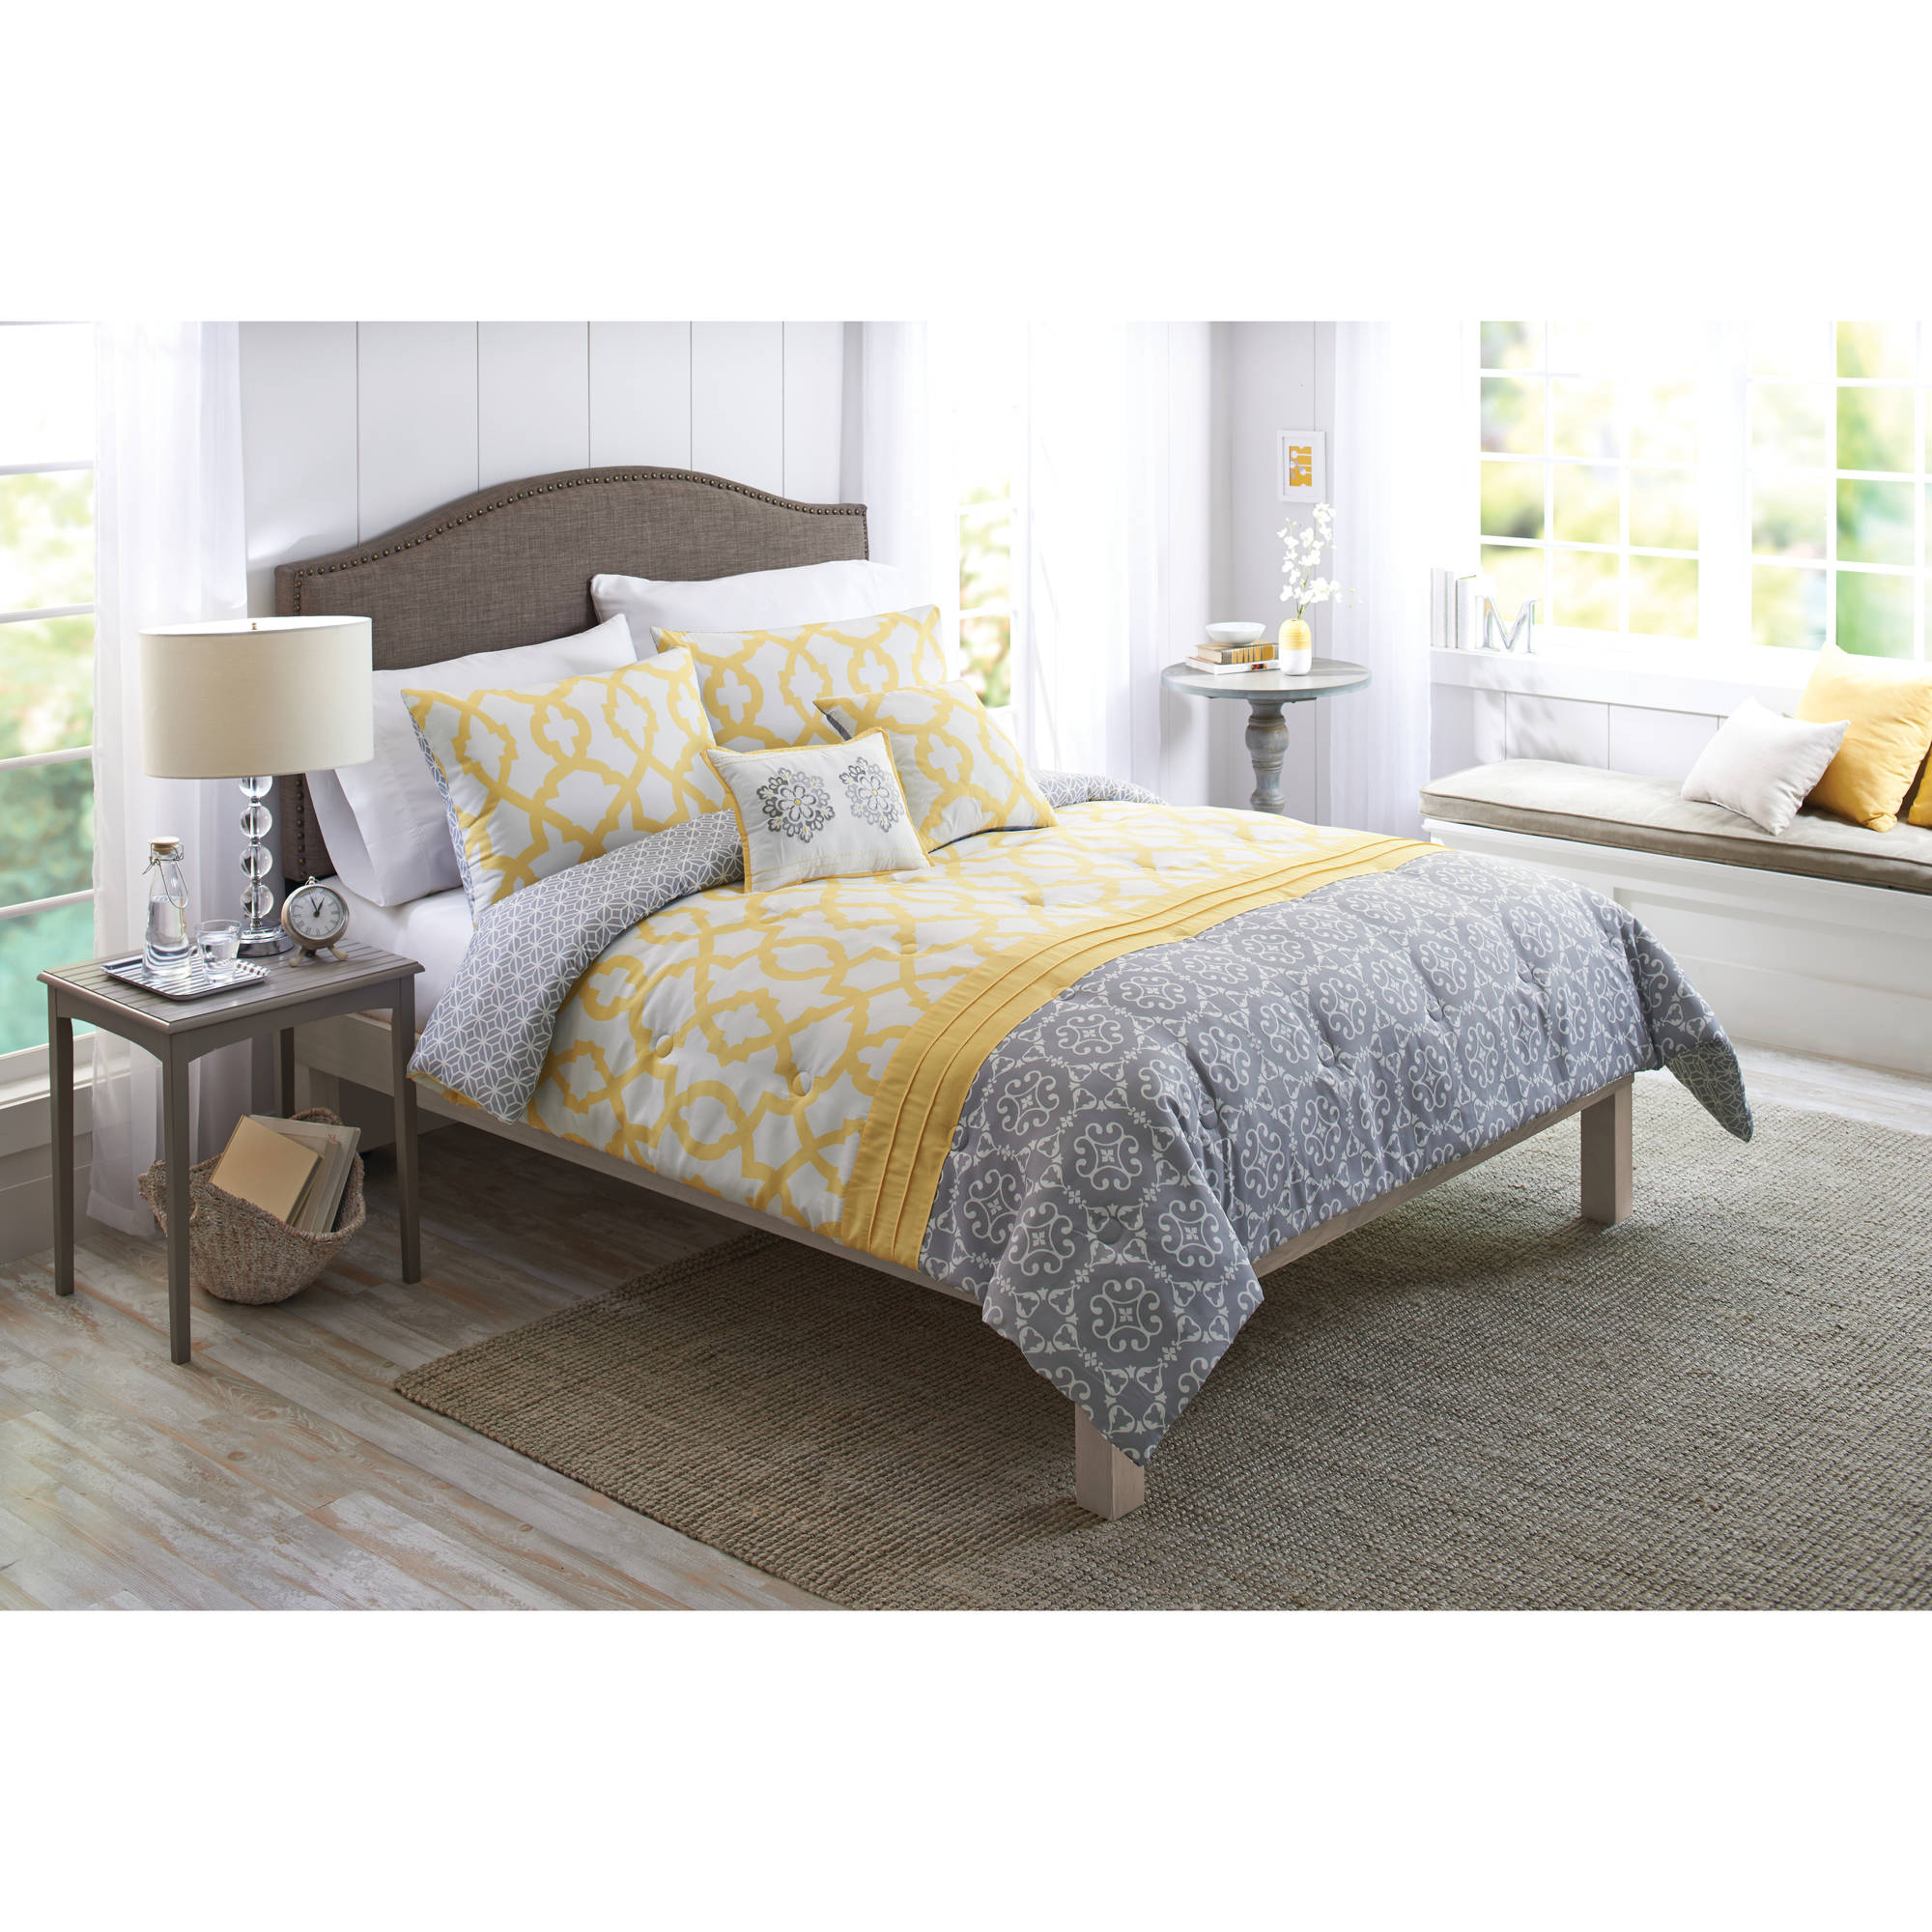 op set piece product park madison prd sharpen yellow comforter hei wid brighton jsp